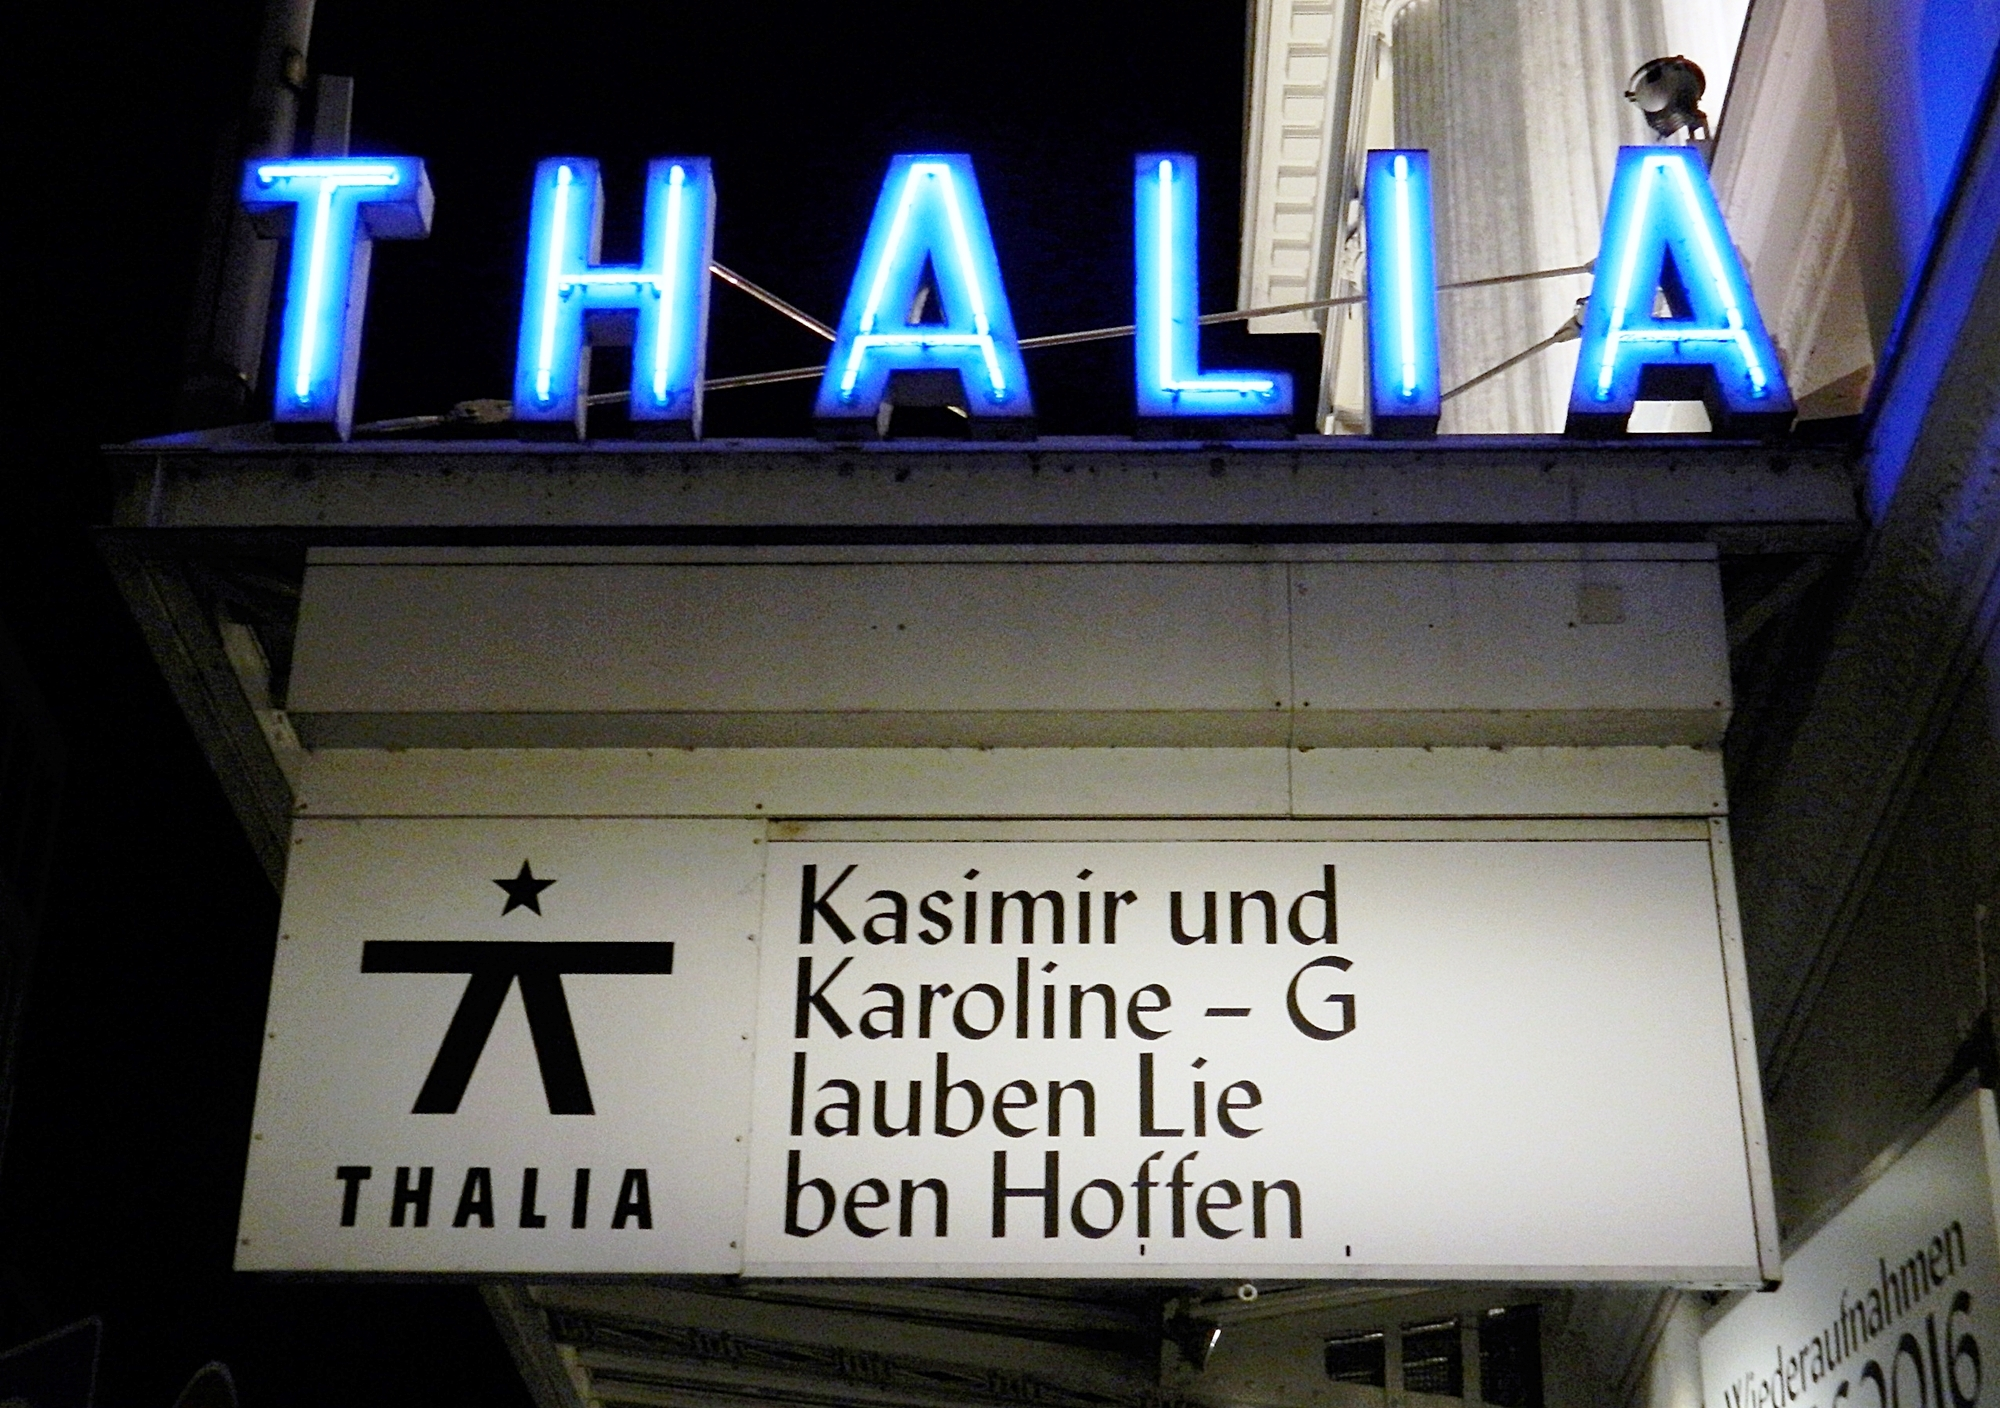 Deutsches theater berlin Â« blog.theater nachtgedanken.de